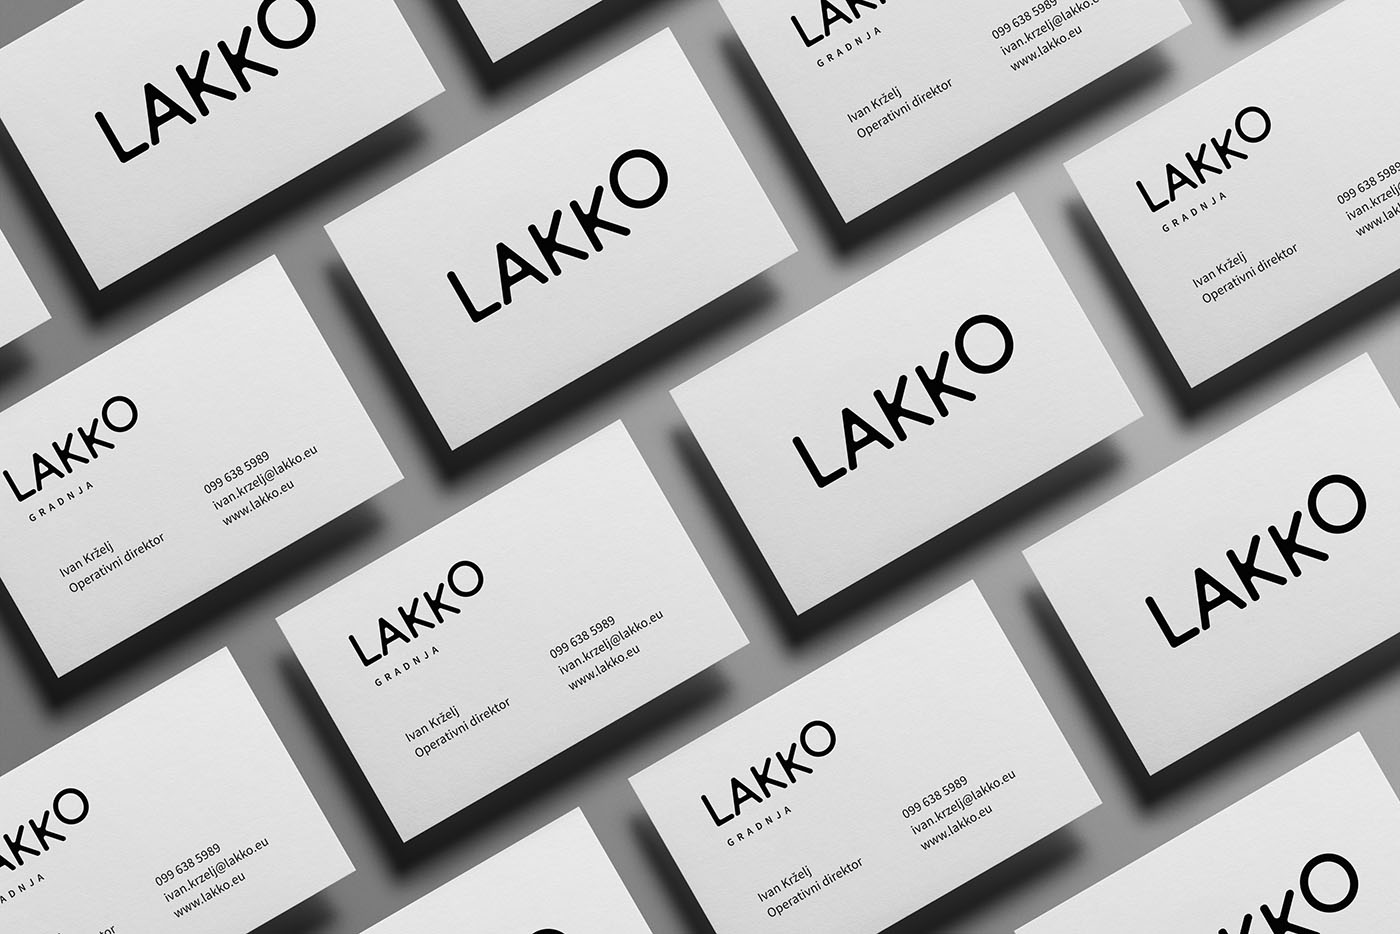 lakko_vizitke_business_card_design_logo.jpg